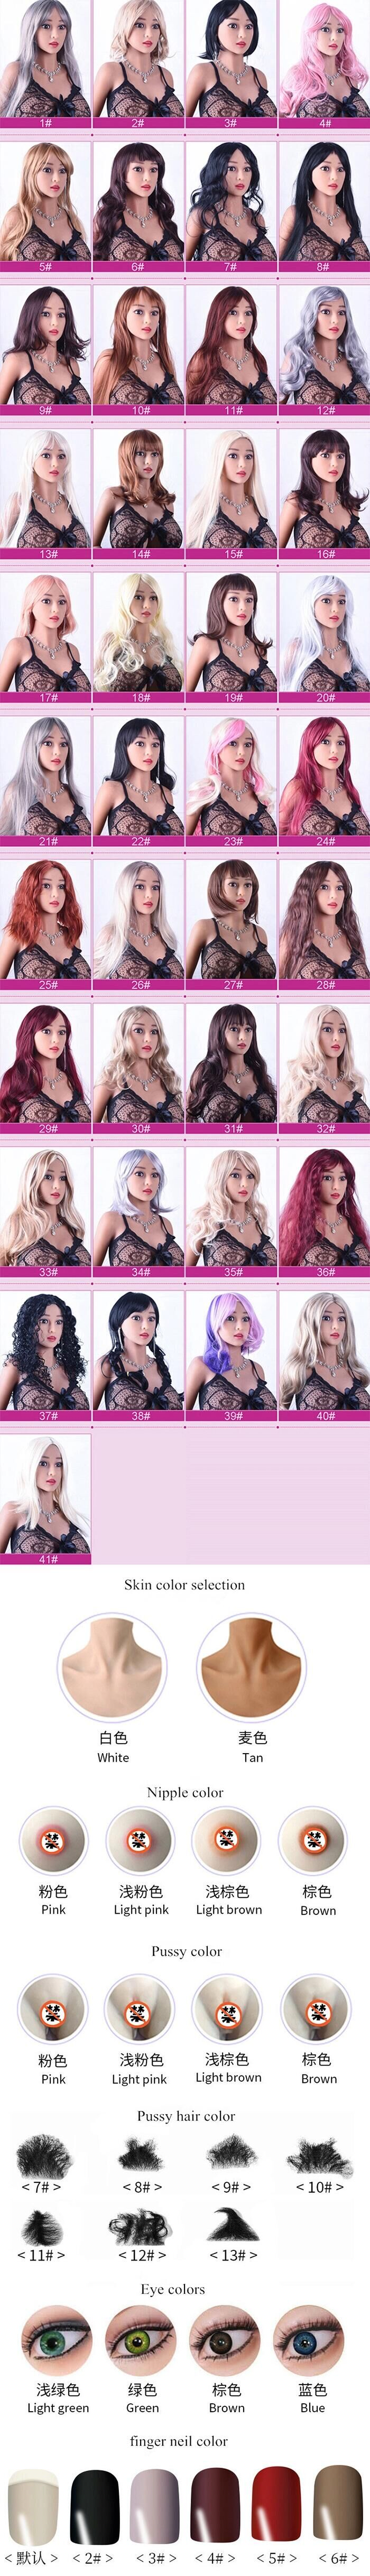 Factory Price 165CM Small Full Body Silicone Sex Doll With Big Boobs